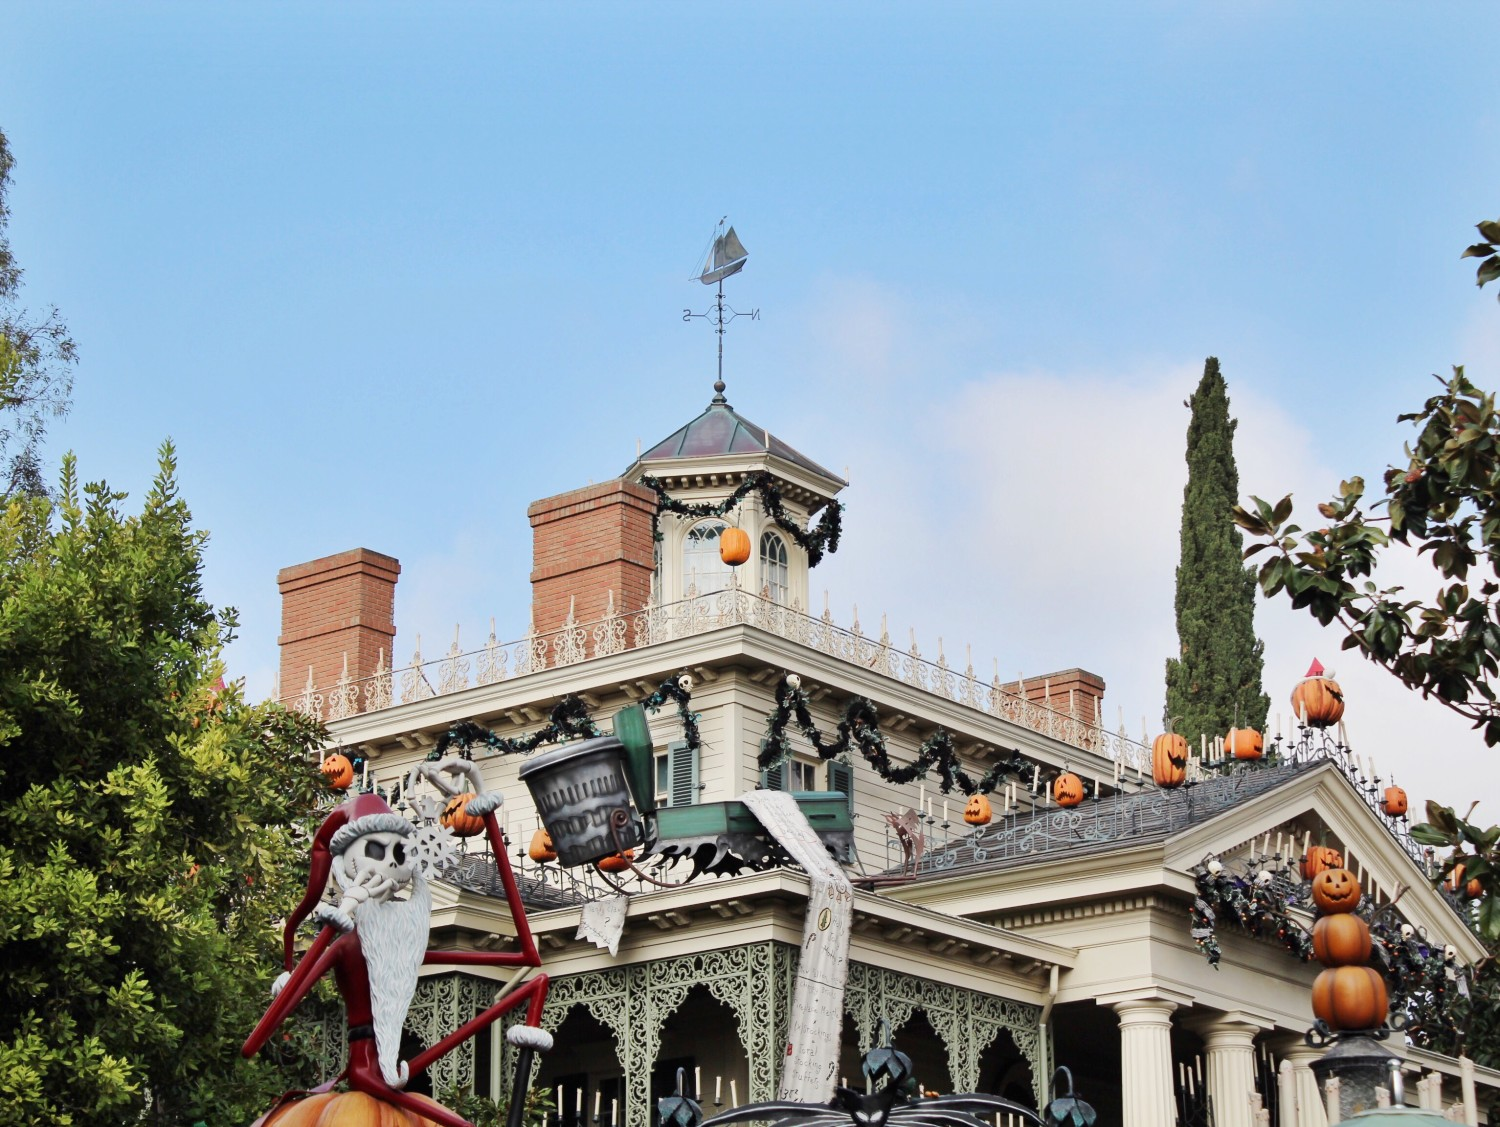 Disneyland Haunted Mansion Holiday